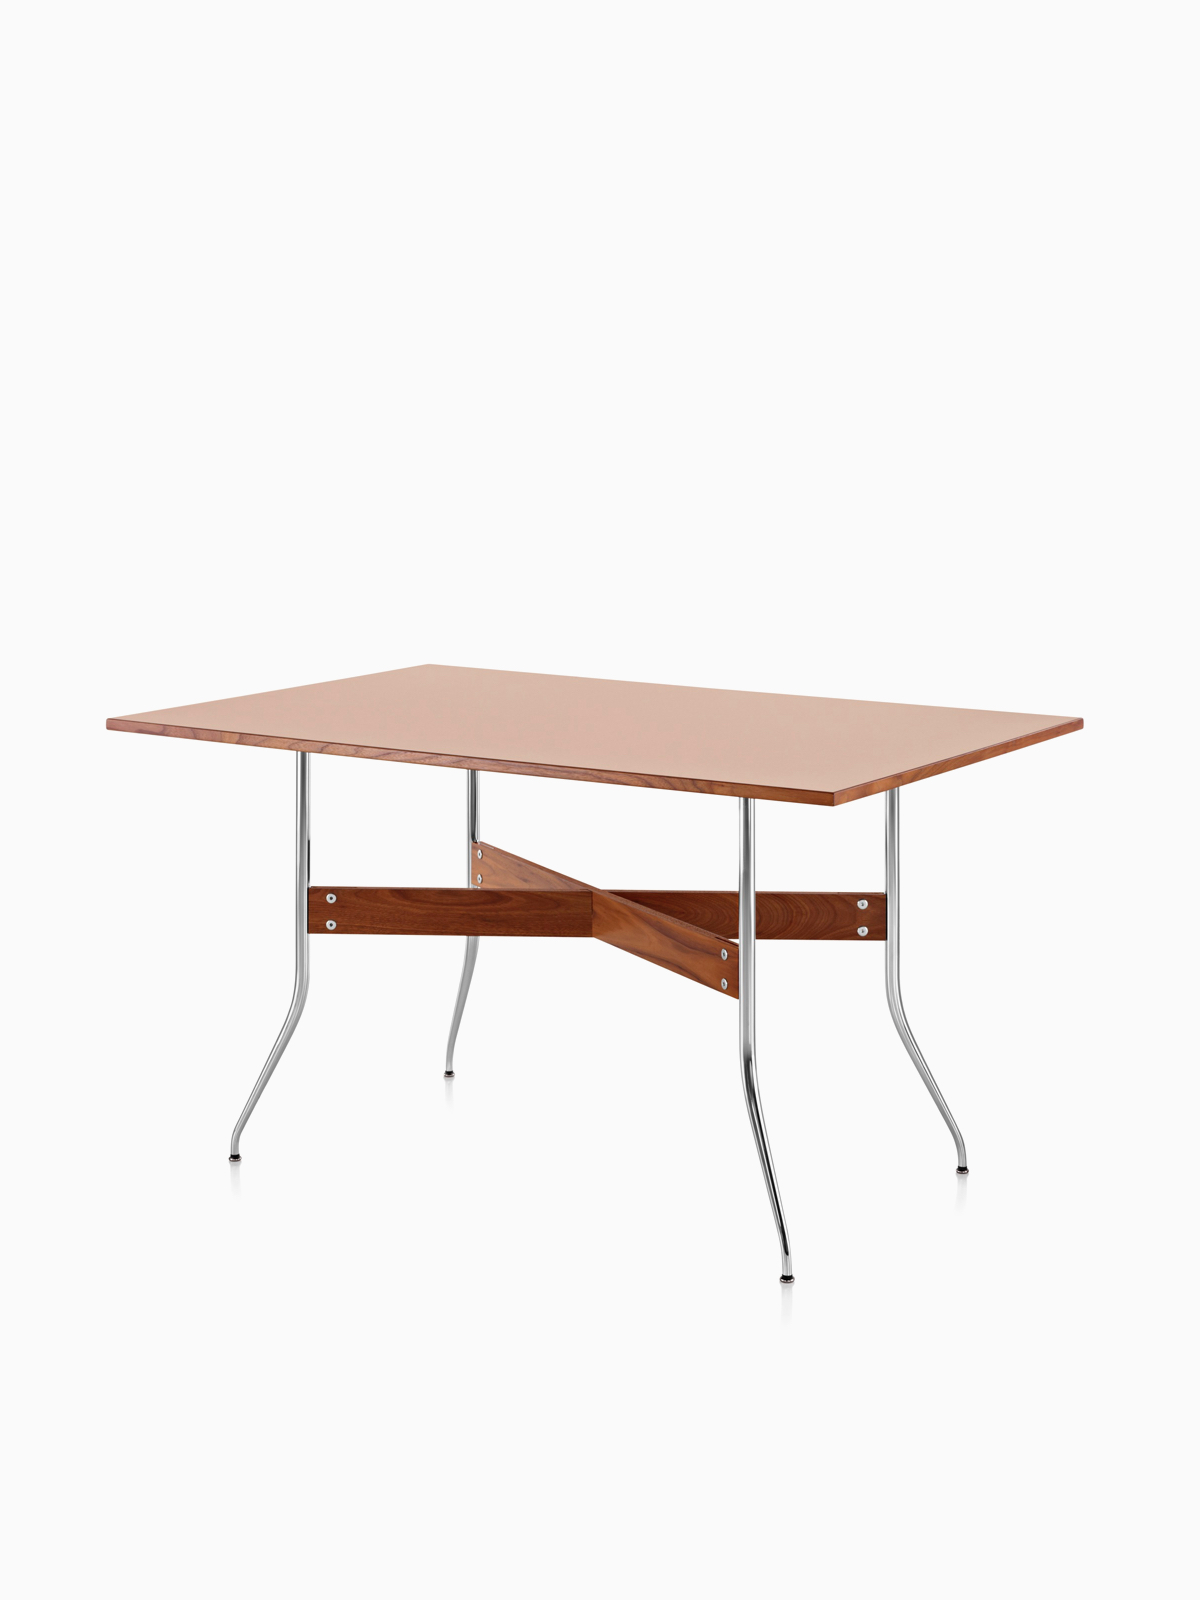 Nelson Swag Leg Desk and Tables